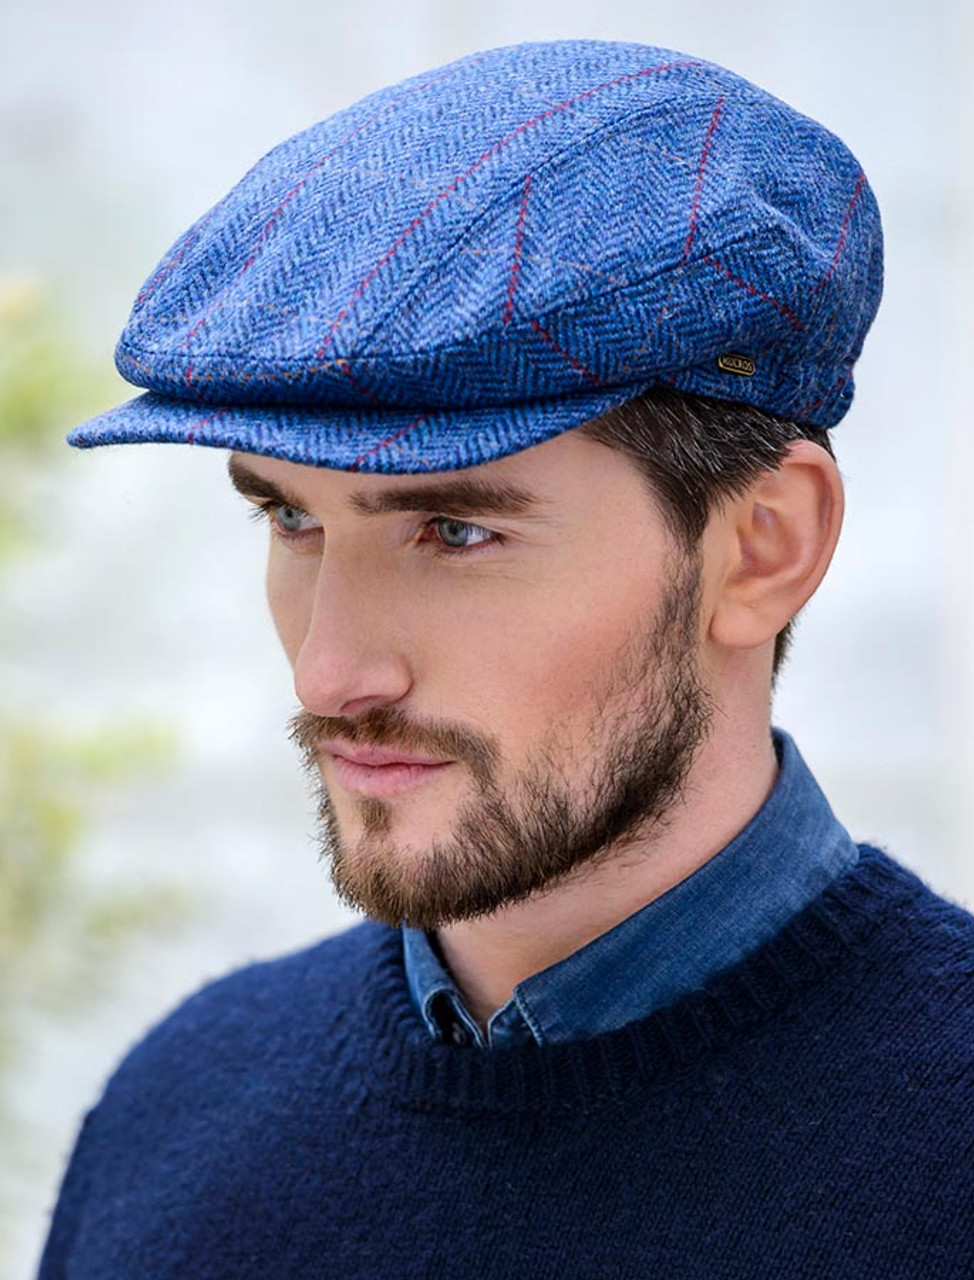 e8fb3931e Kerry Tweed Flat Cap - Blue with Red